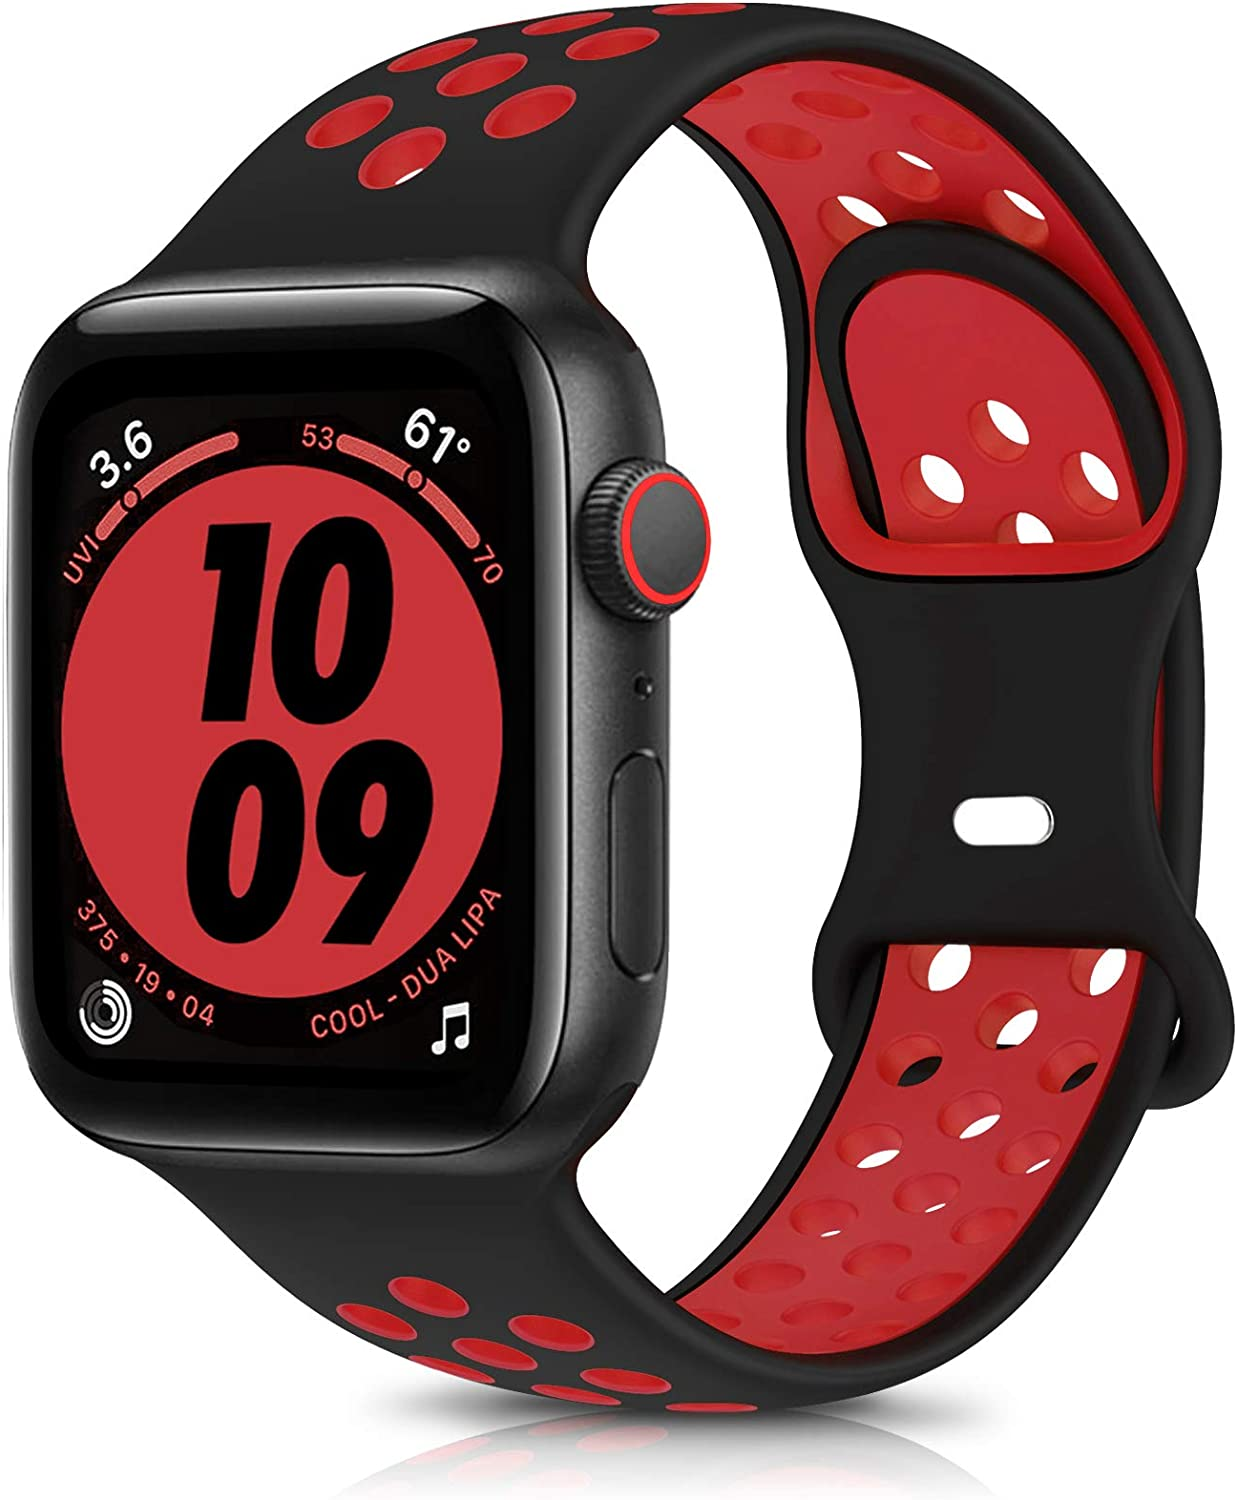 OYODSS Sport Bands Compatible with Apple Watch Band 38mm 40mm 42mm 44mm, Breathable Soft Silicone Replacement Wristband Strap Compatible with iWatch Series 6 5 4 3 2 1 SE Women Men Black&Red